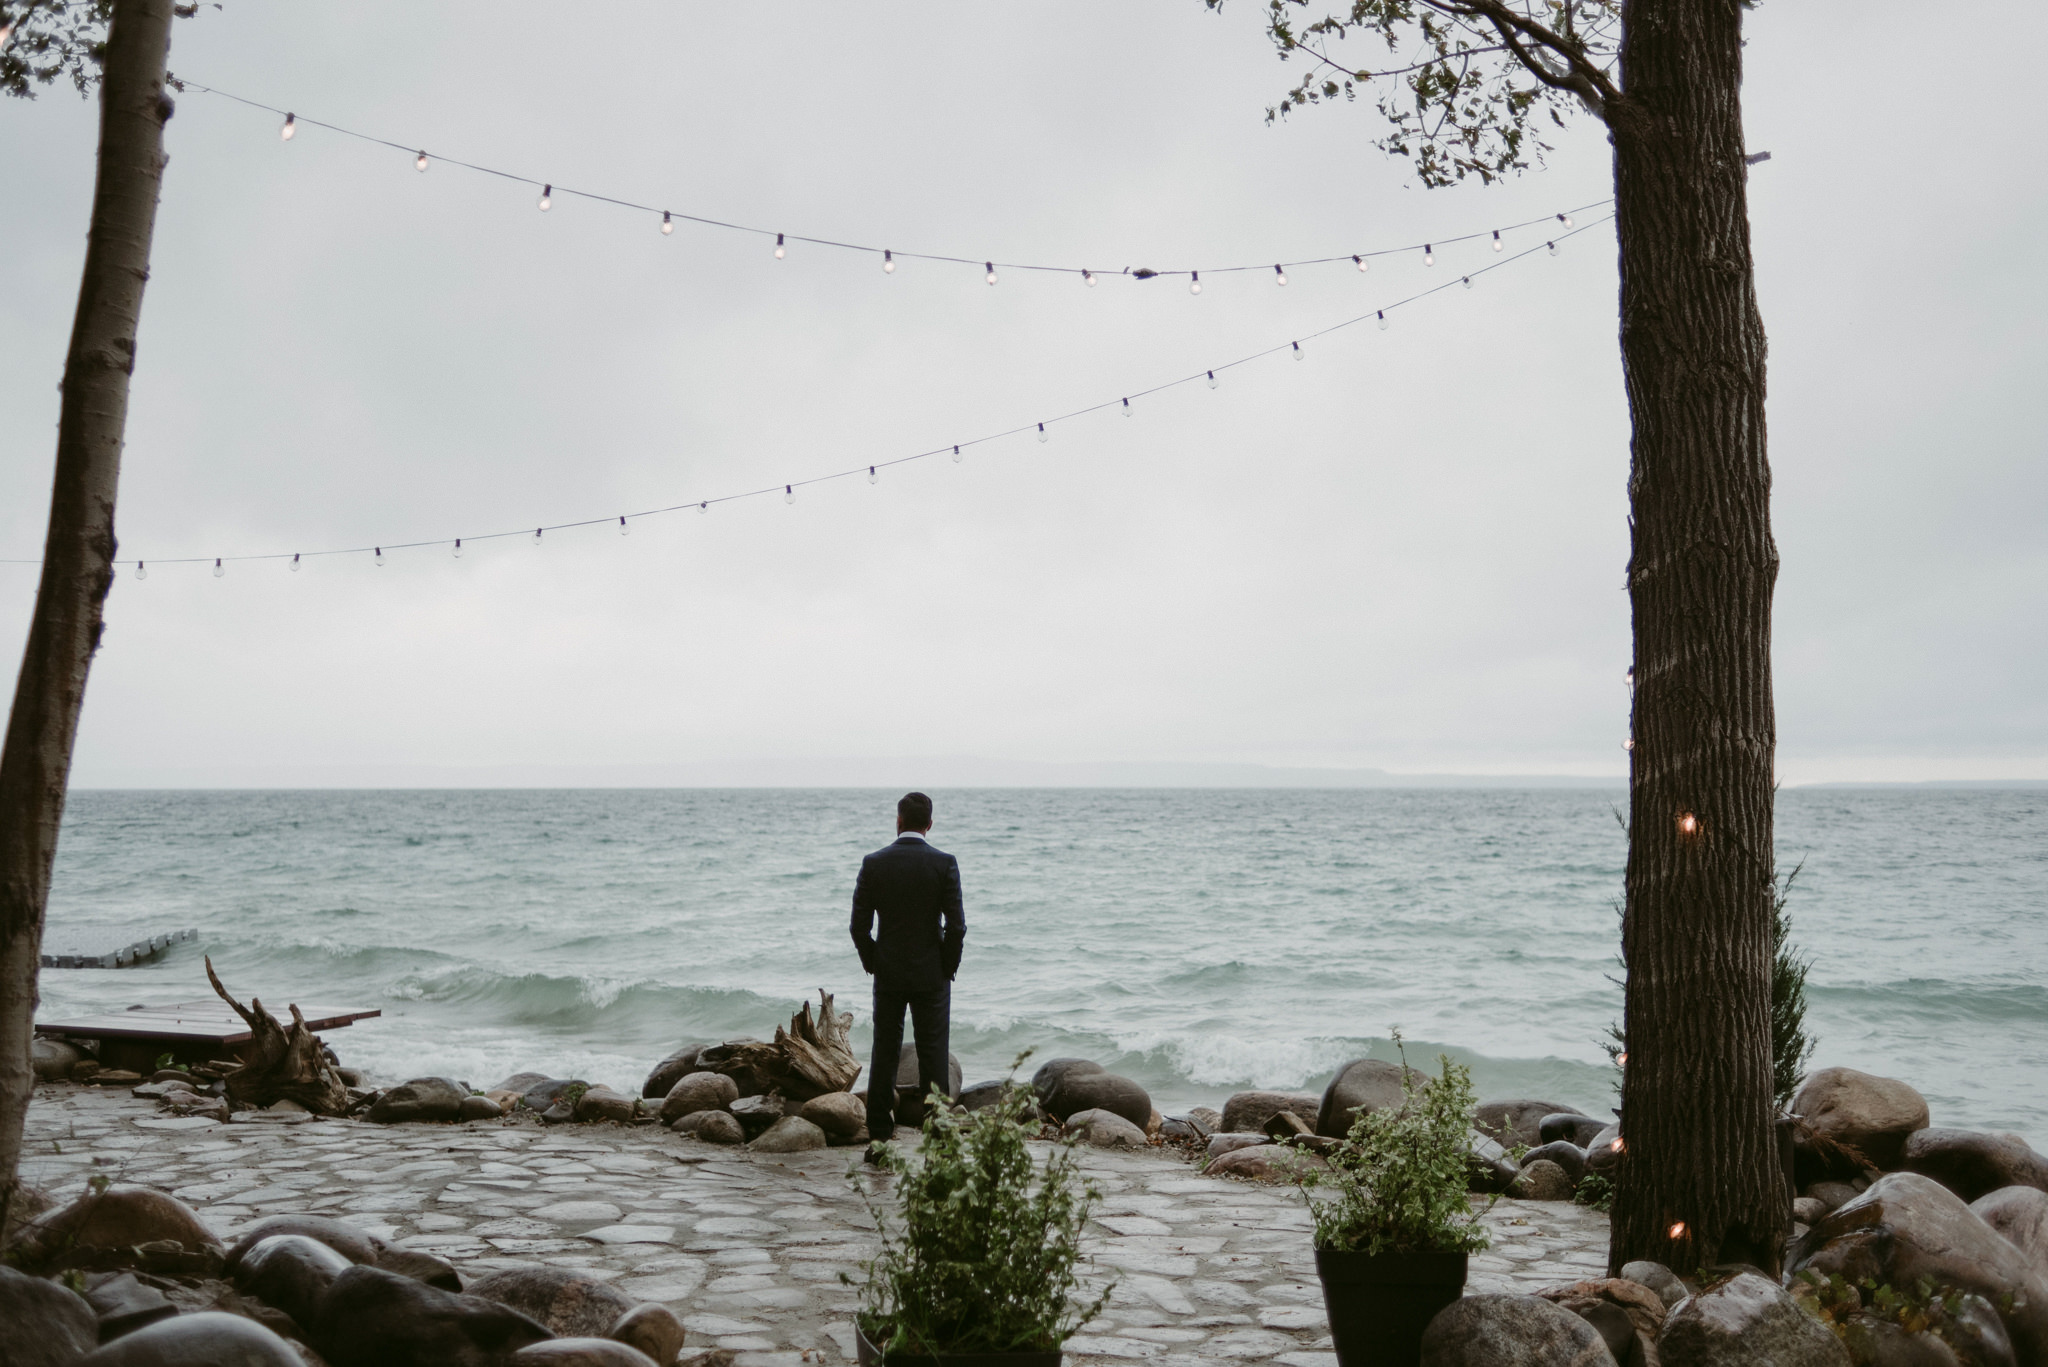 Groom looking out onto lake waiting for bride